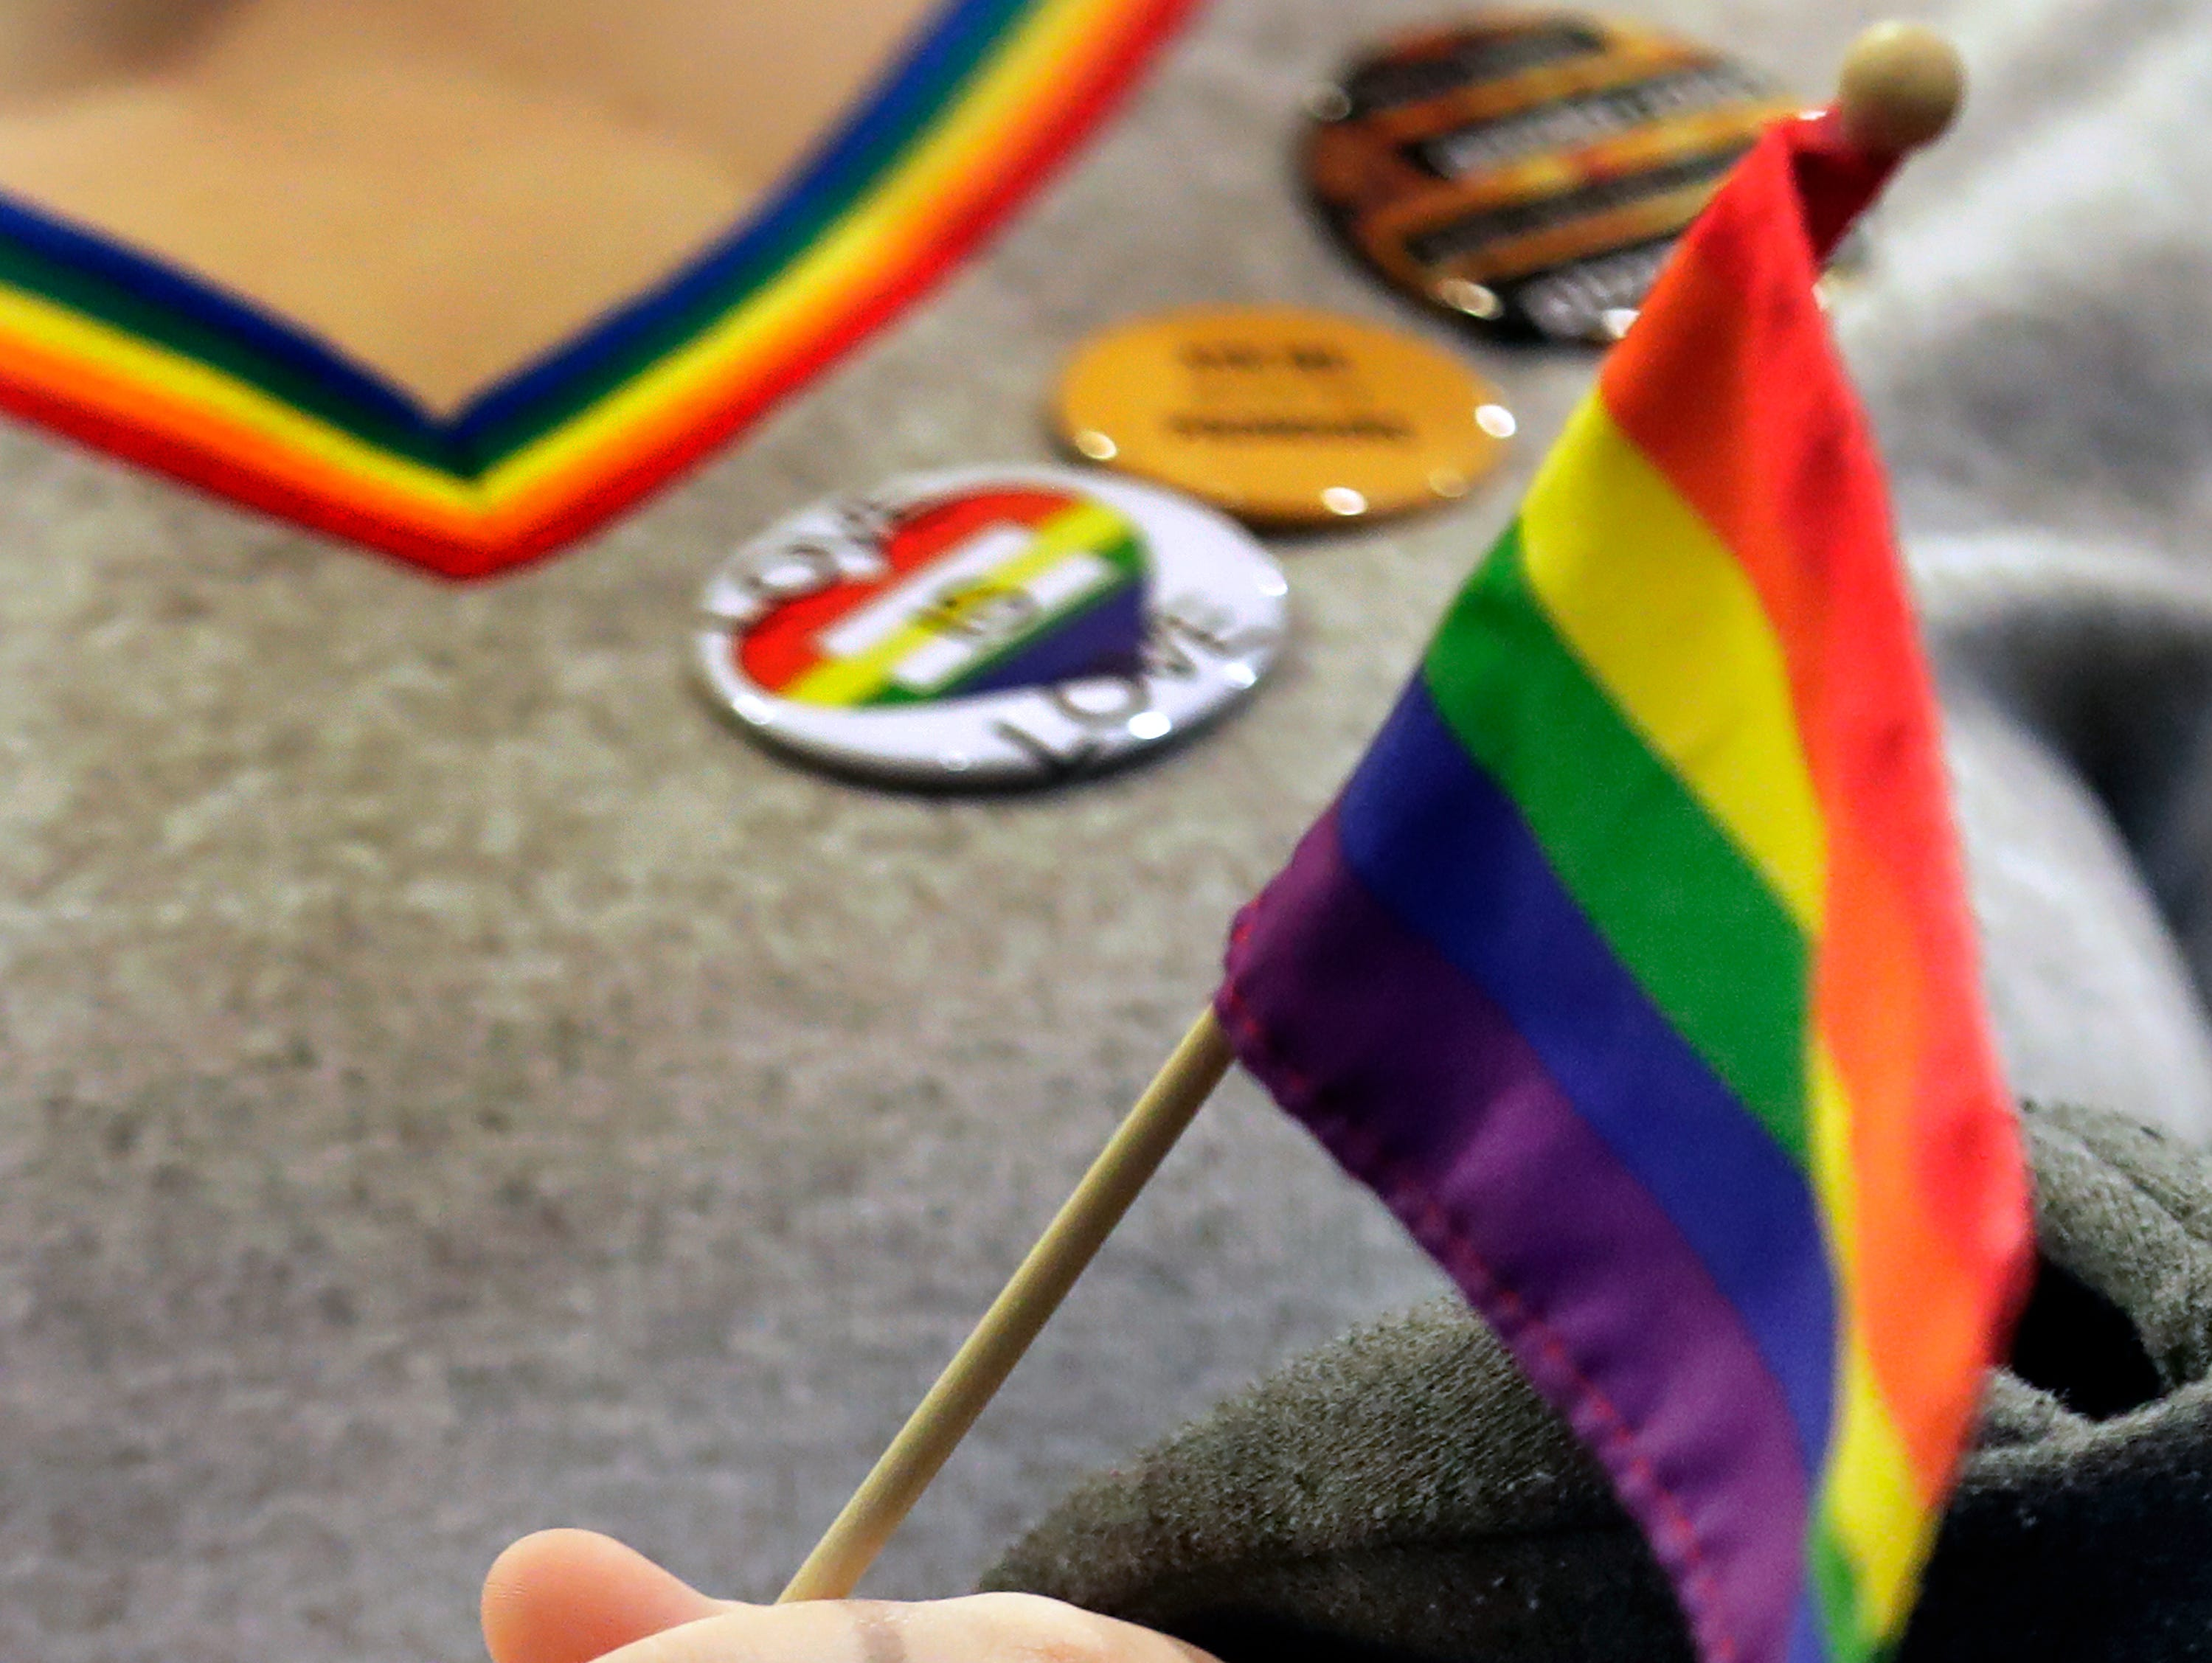 The 10th annual LGBTQ+ Ally March at the Reeve Memorial Union on the University of Wisconsin Oshkosh campus onWednesday, April 17, 2019, in Oshkosh, Wis. Wm. Glasheen/USA TODAY NETWORK-Wisconsin.